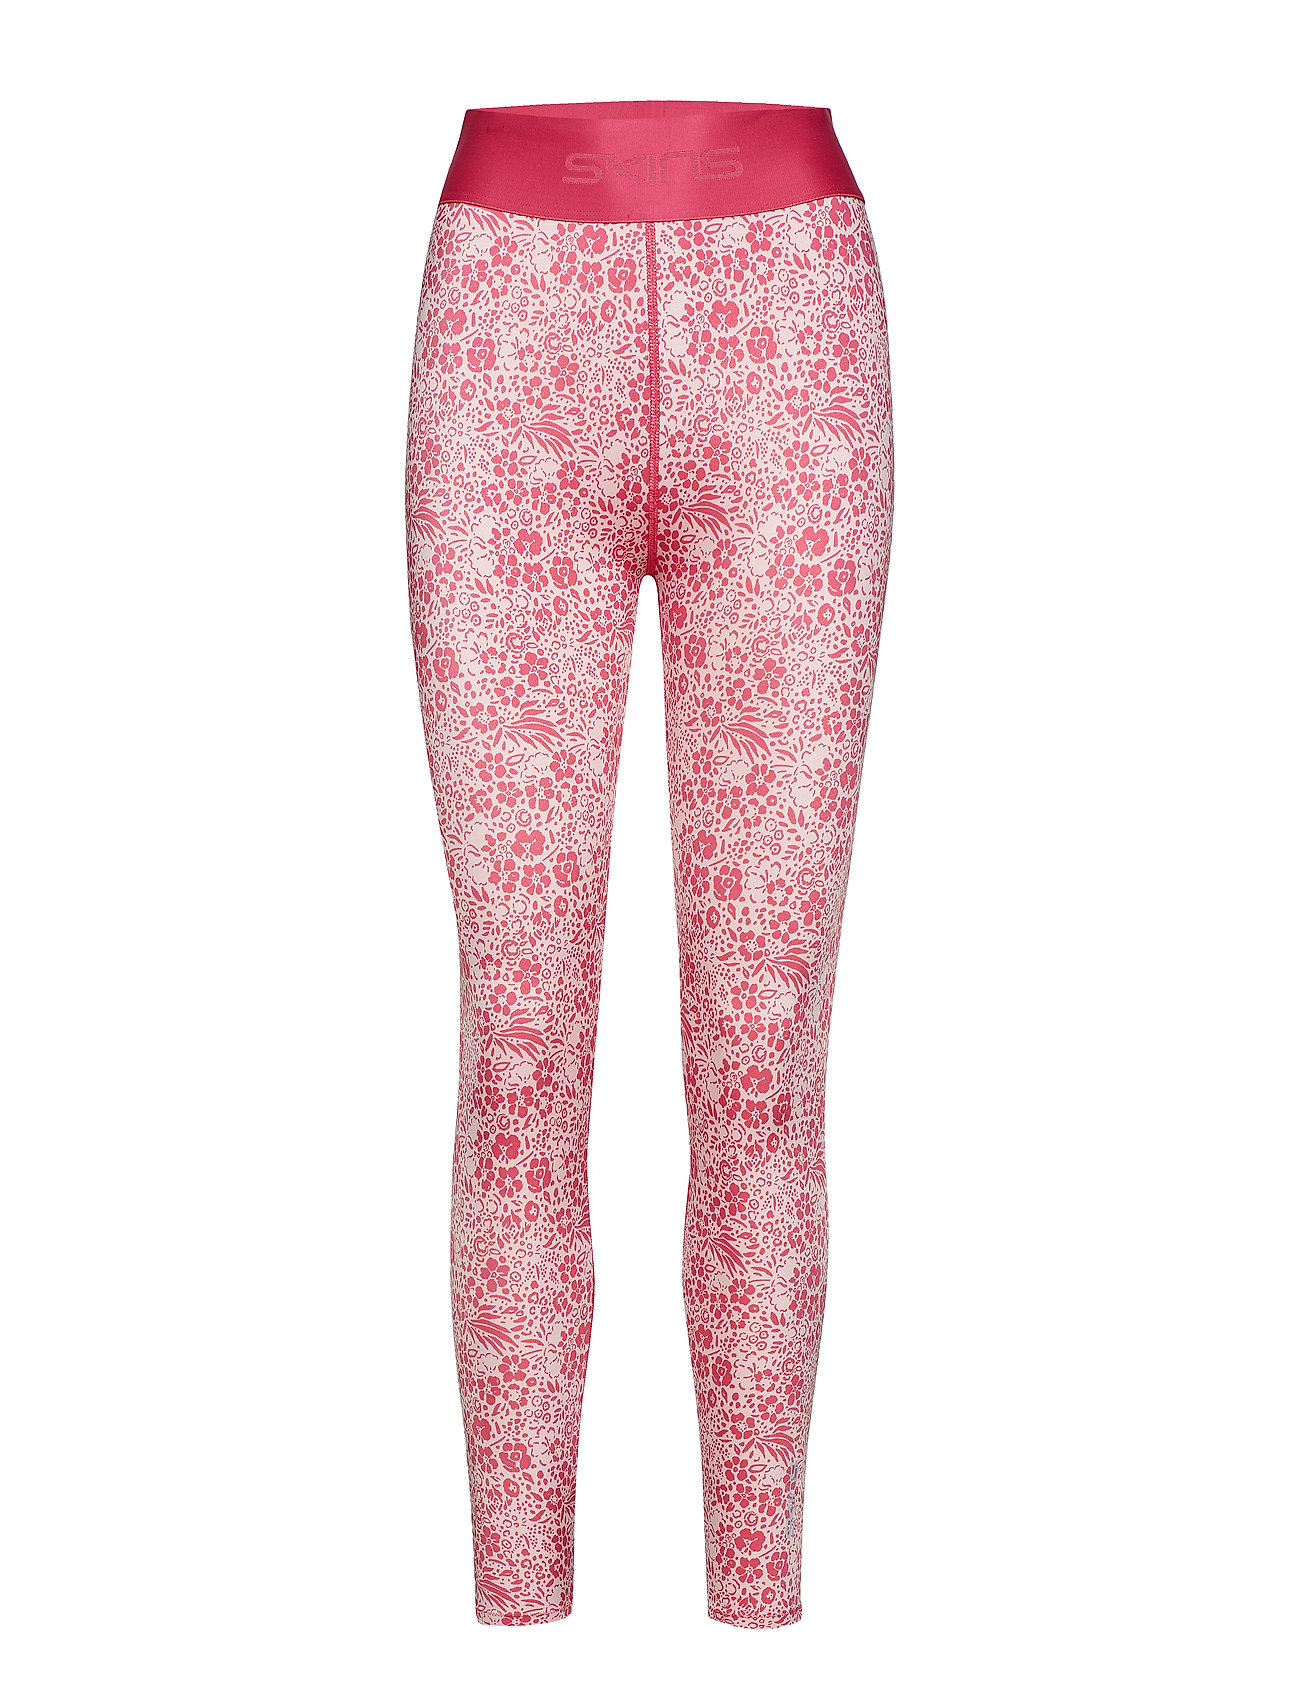 Skins DNAmic Primary Womens 7/8 Tights Skyscraper - PETIT FLORAL PINK